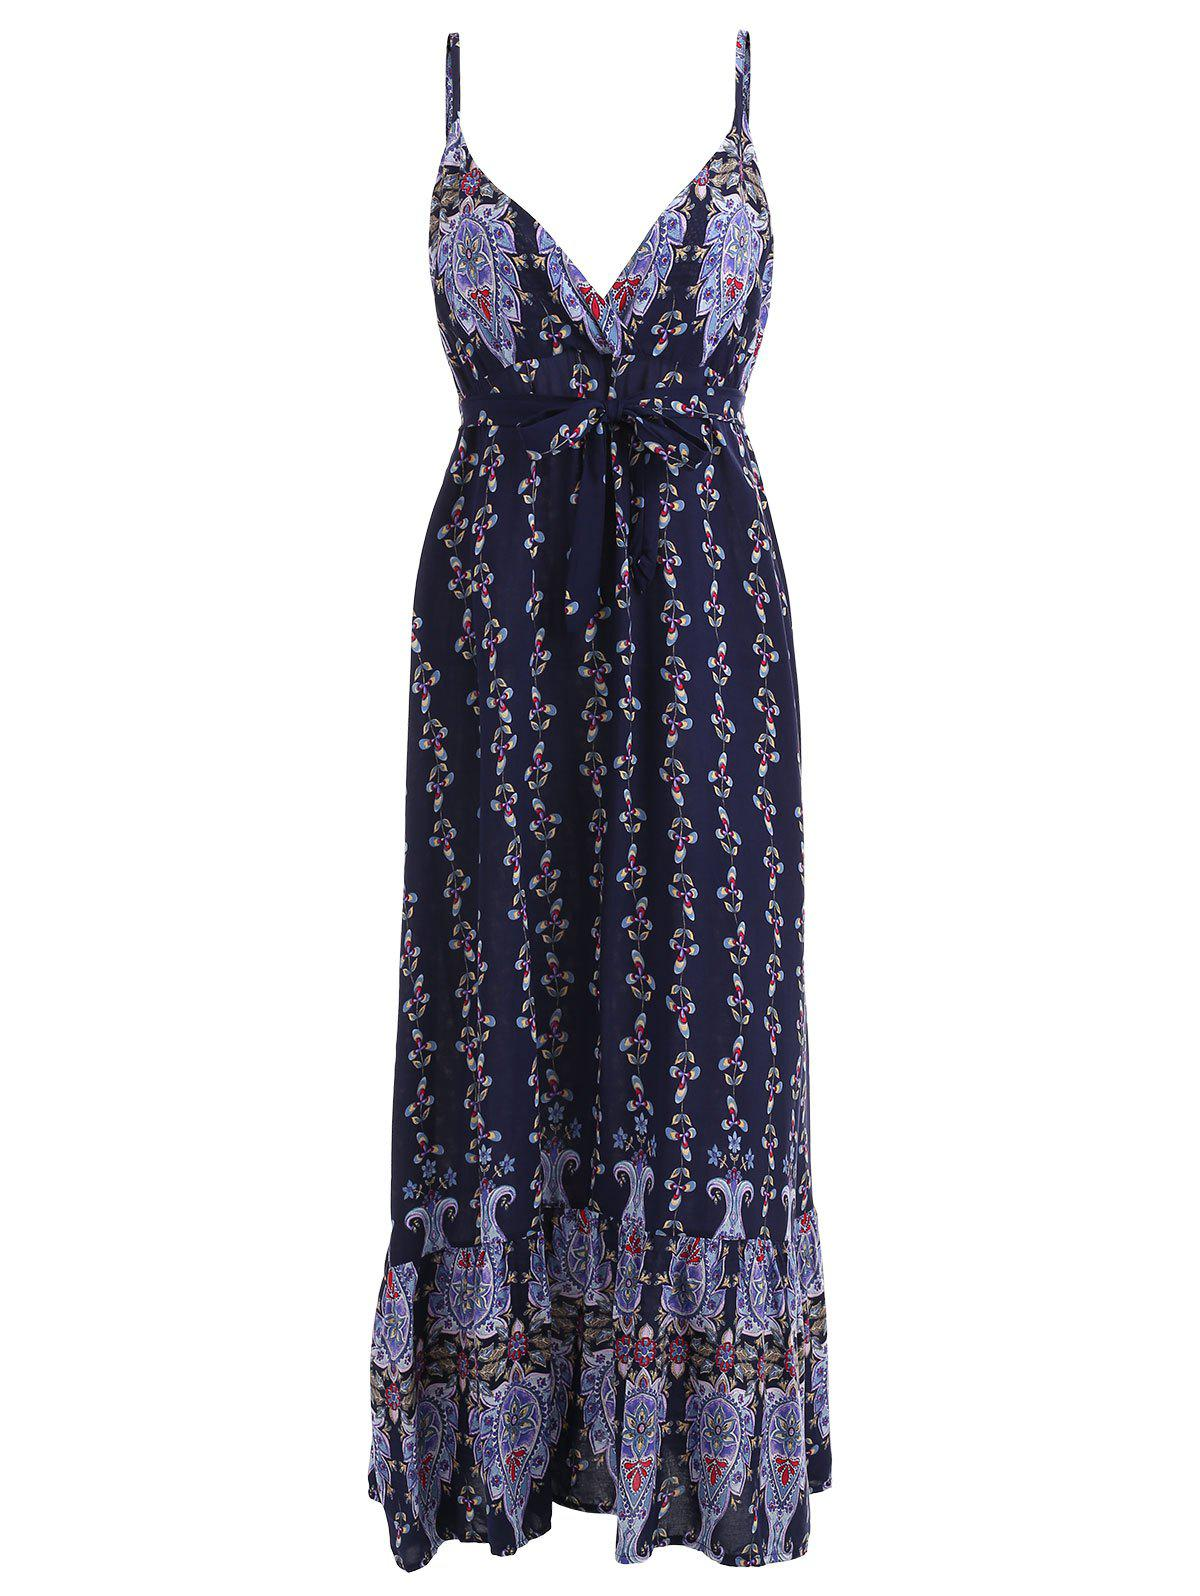 Print Plunging Neck Slip Dress - DEEP BLUE ONE SIZE